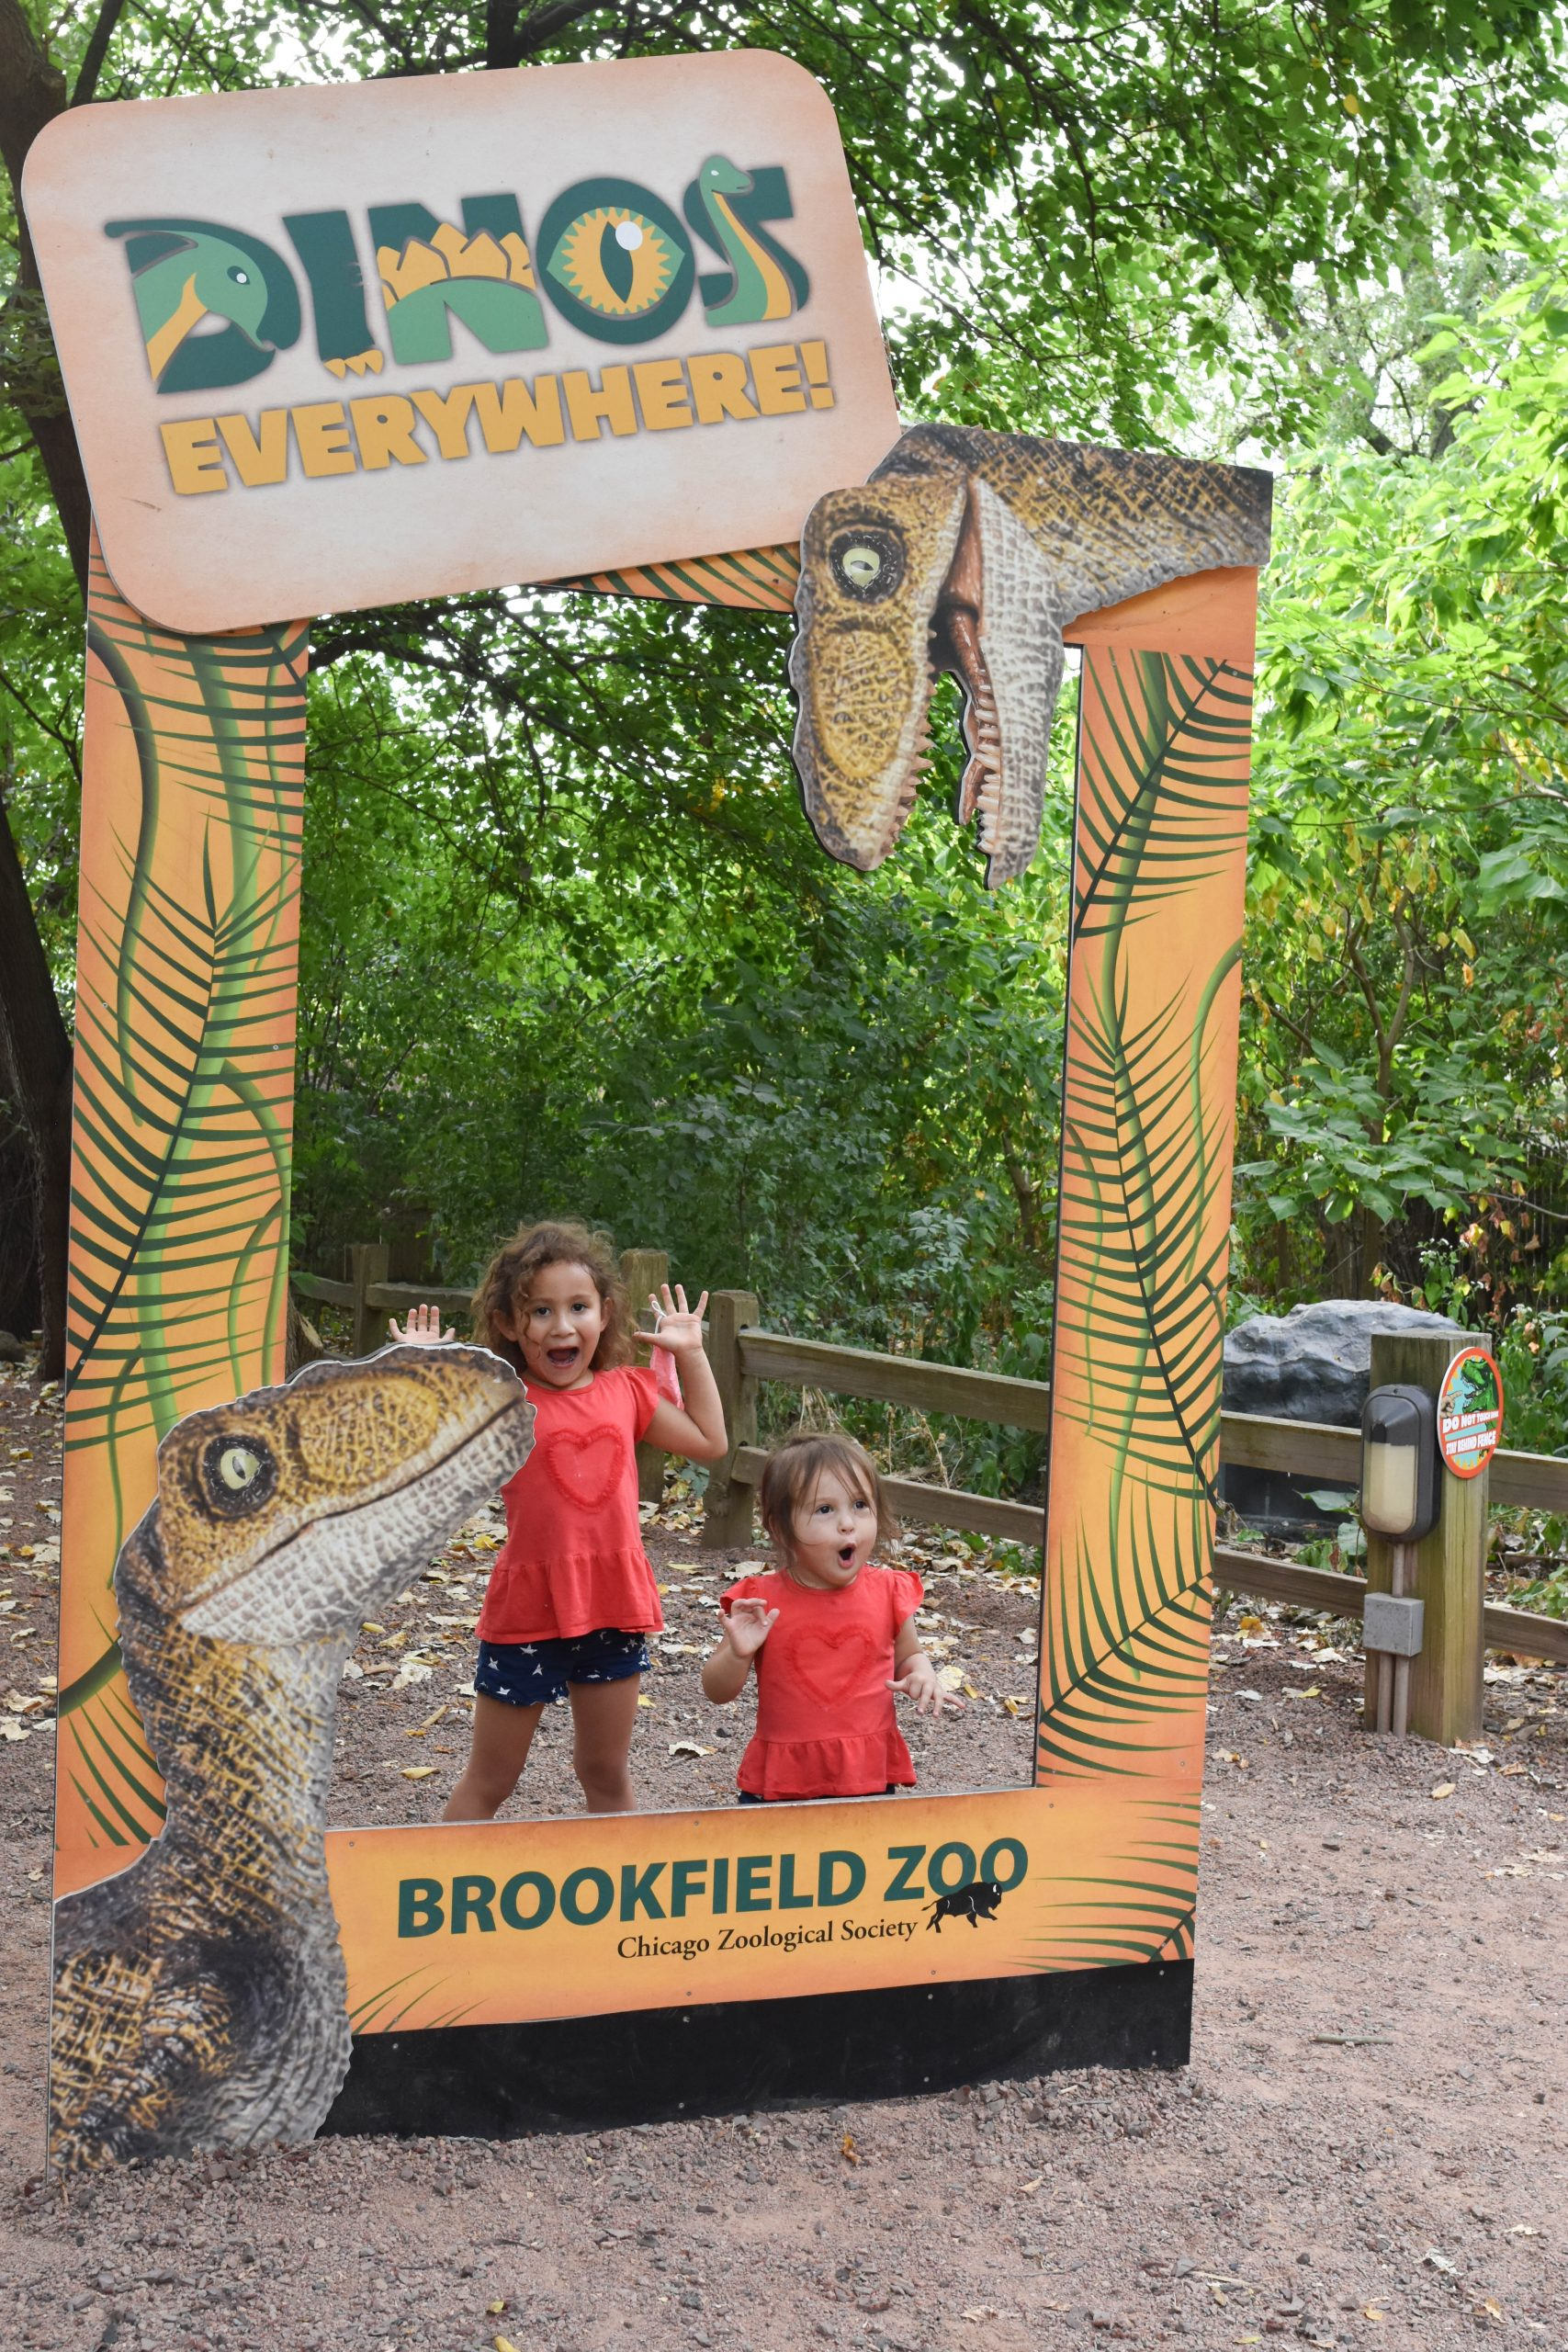 Chicago Zoological Society Brookfield Zoo Know Before You Go